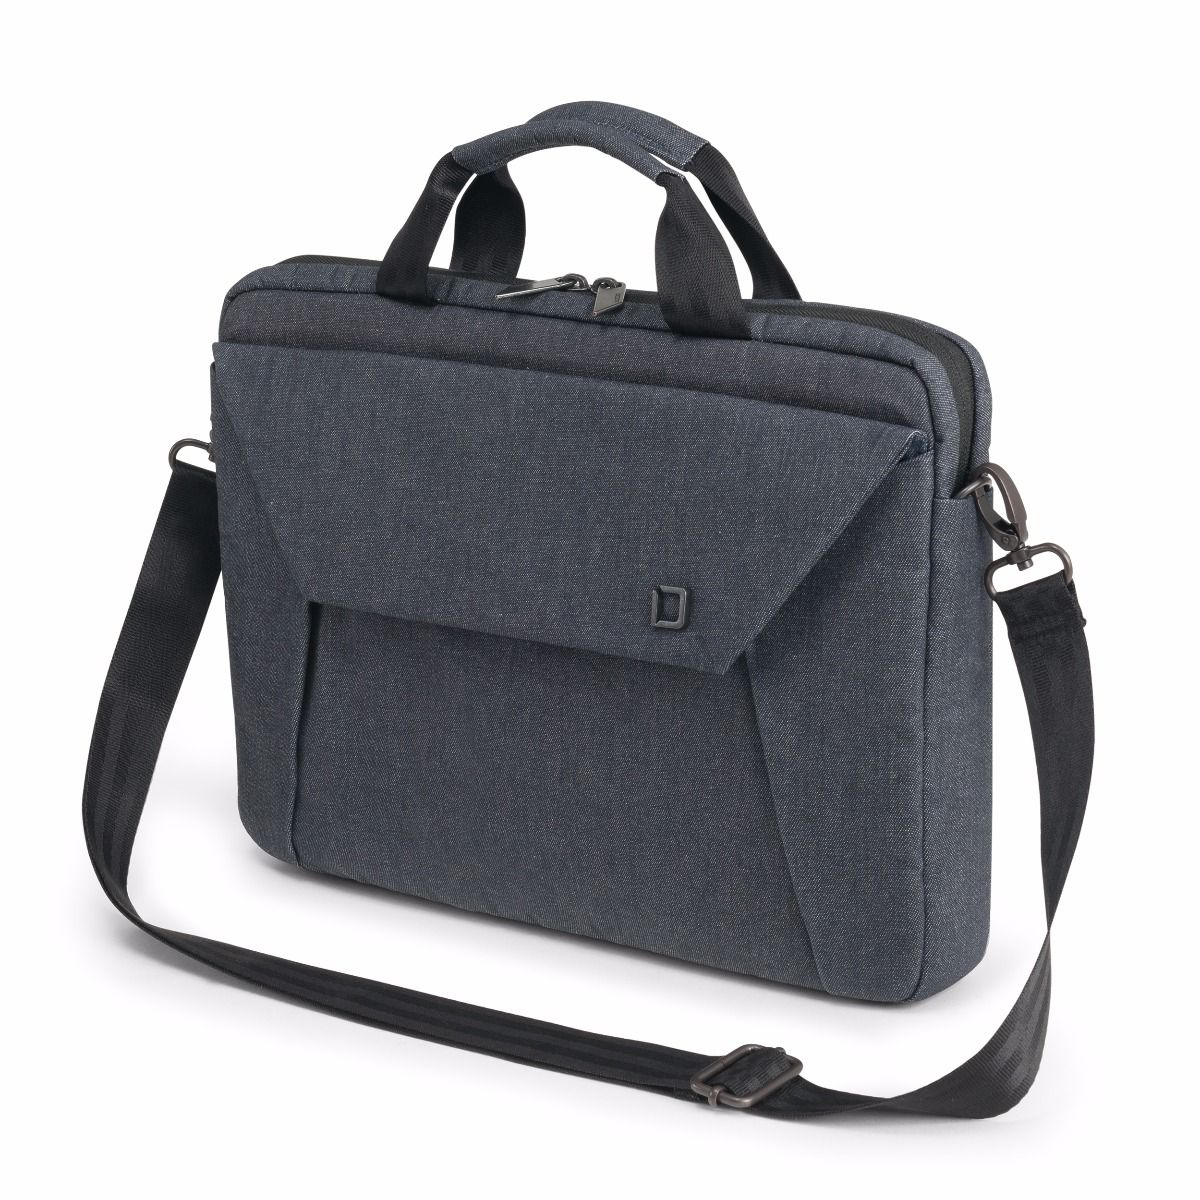 D31386 Slim Case EDGE 14-15.6 blue denim